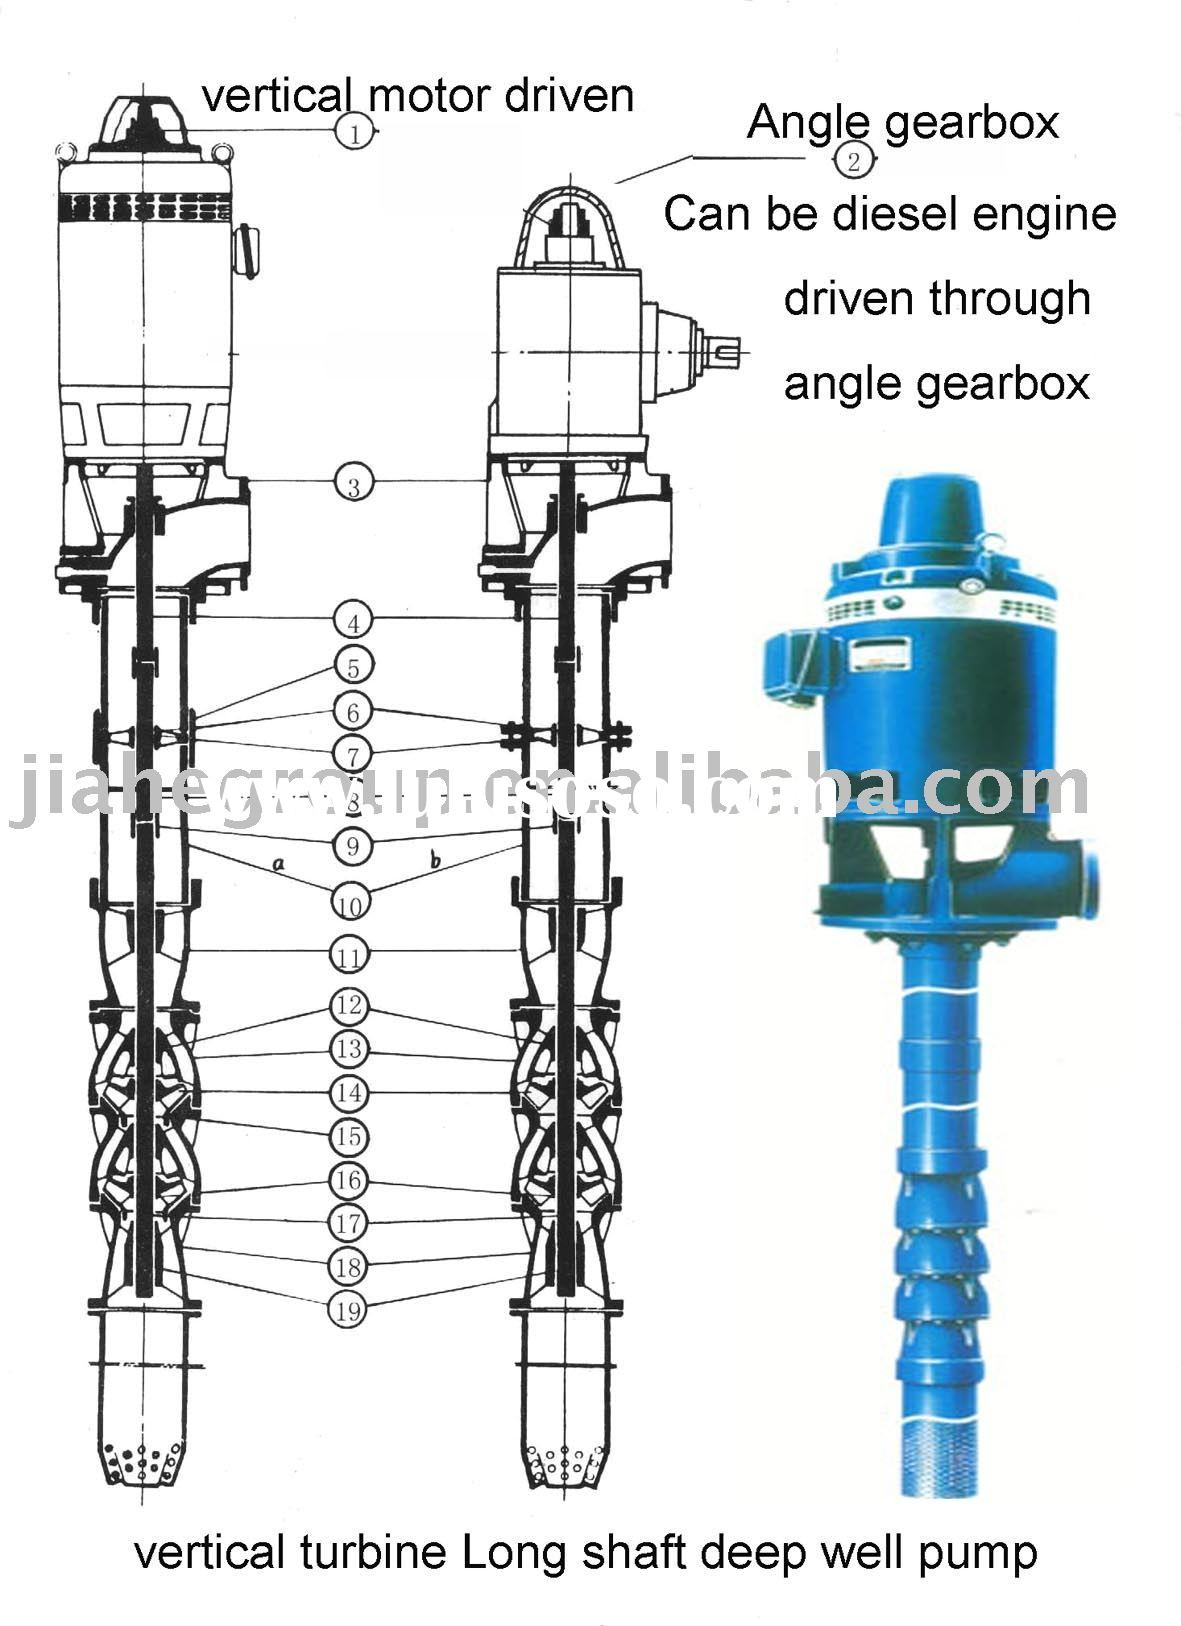 hight resolution of sewage pump schematic get free image about wiring diagram cargo oil pump turbine diagram submersible turbine